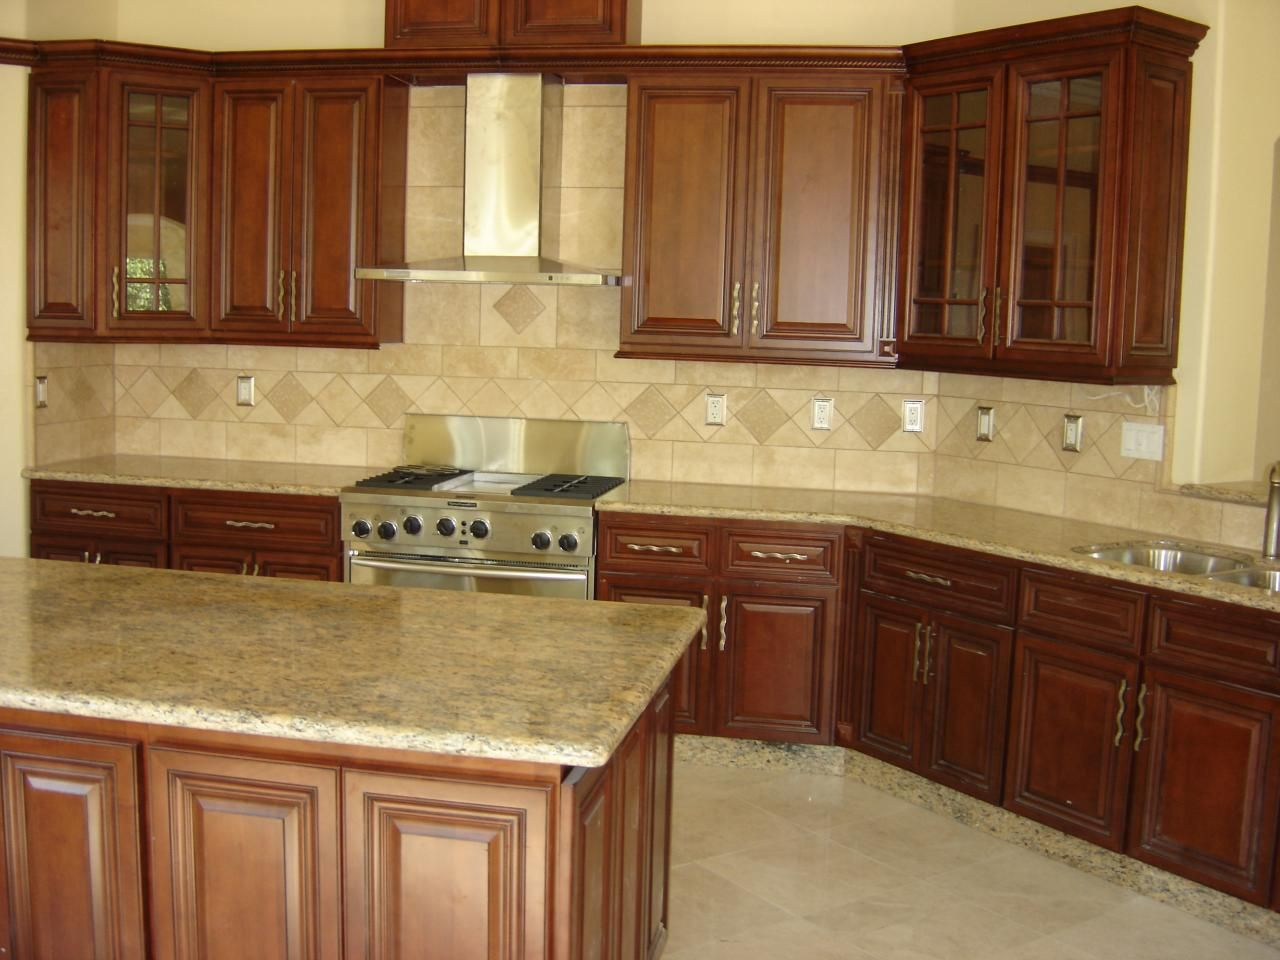 Honey+Maple+Cabinets+with+Granite | ... Wood Maple Glaze